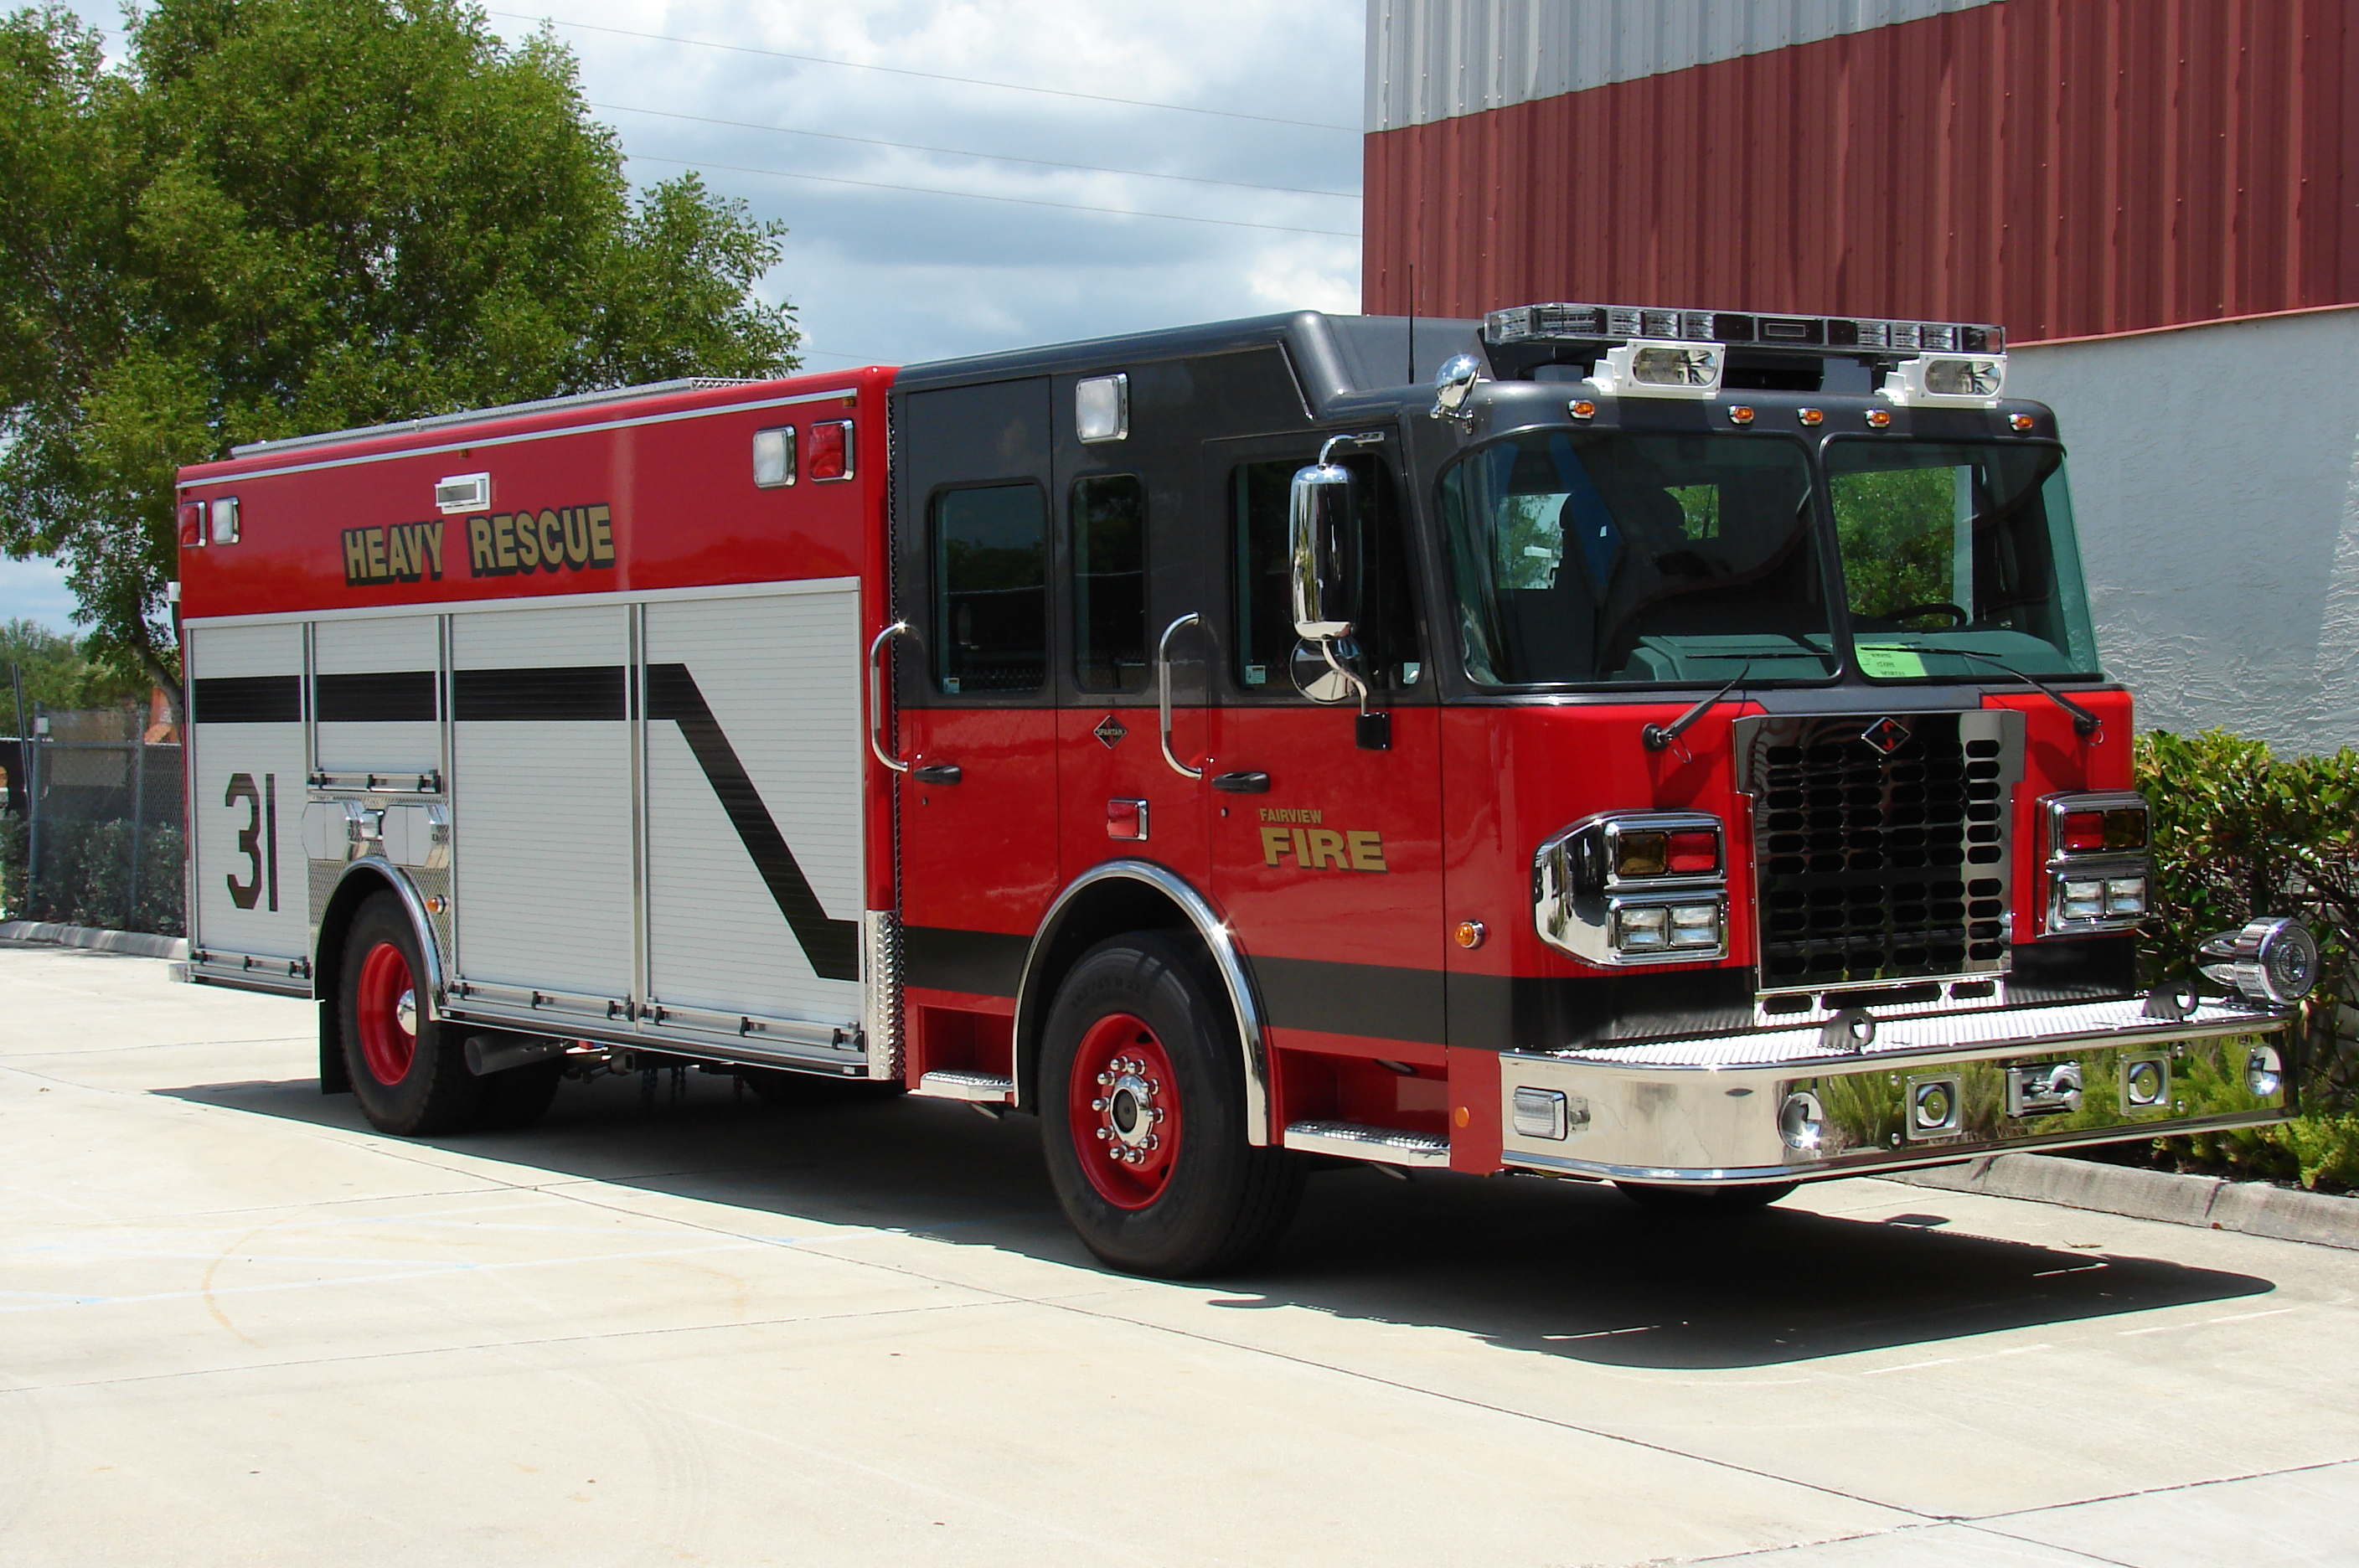 20-Ft. Non-Walk-In Rescue Truck